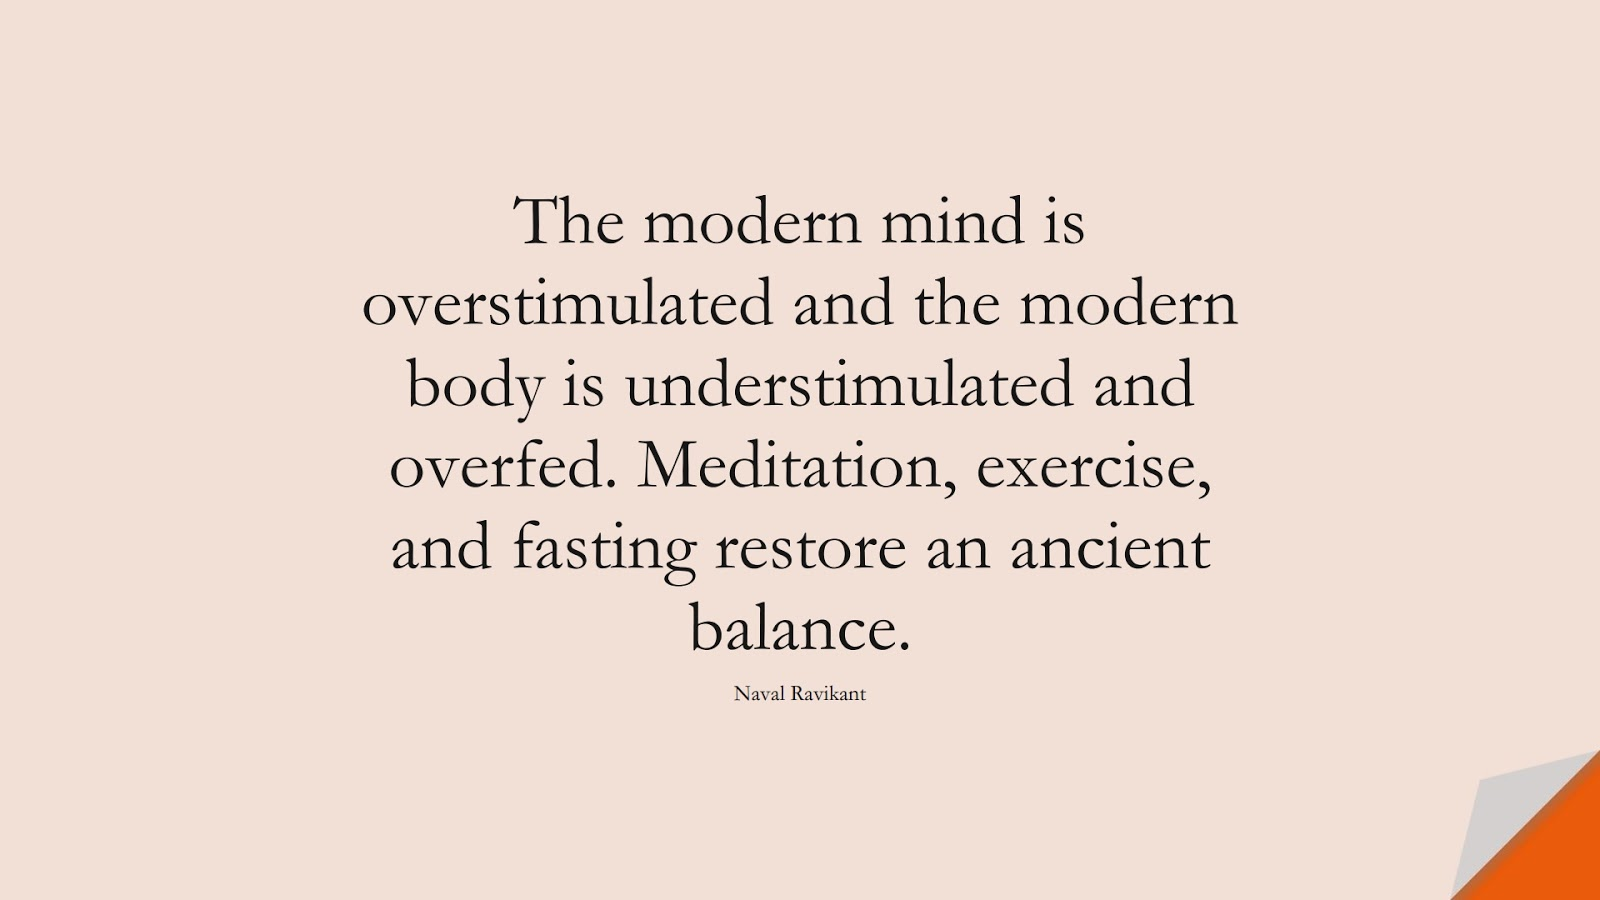 The modern mind is overstimulated and the modern body is understimulated and overfed. Meditation, exercise, and fasting restore an ancient balance. (Naval Ravikant);  #CalmQuotes